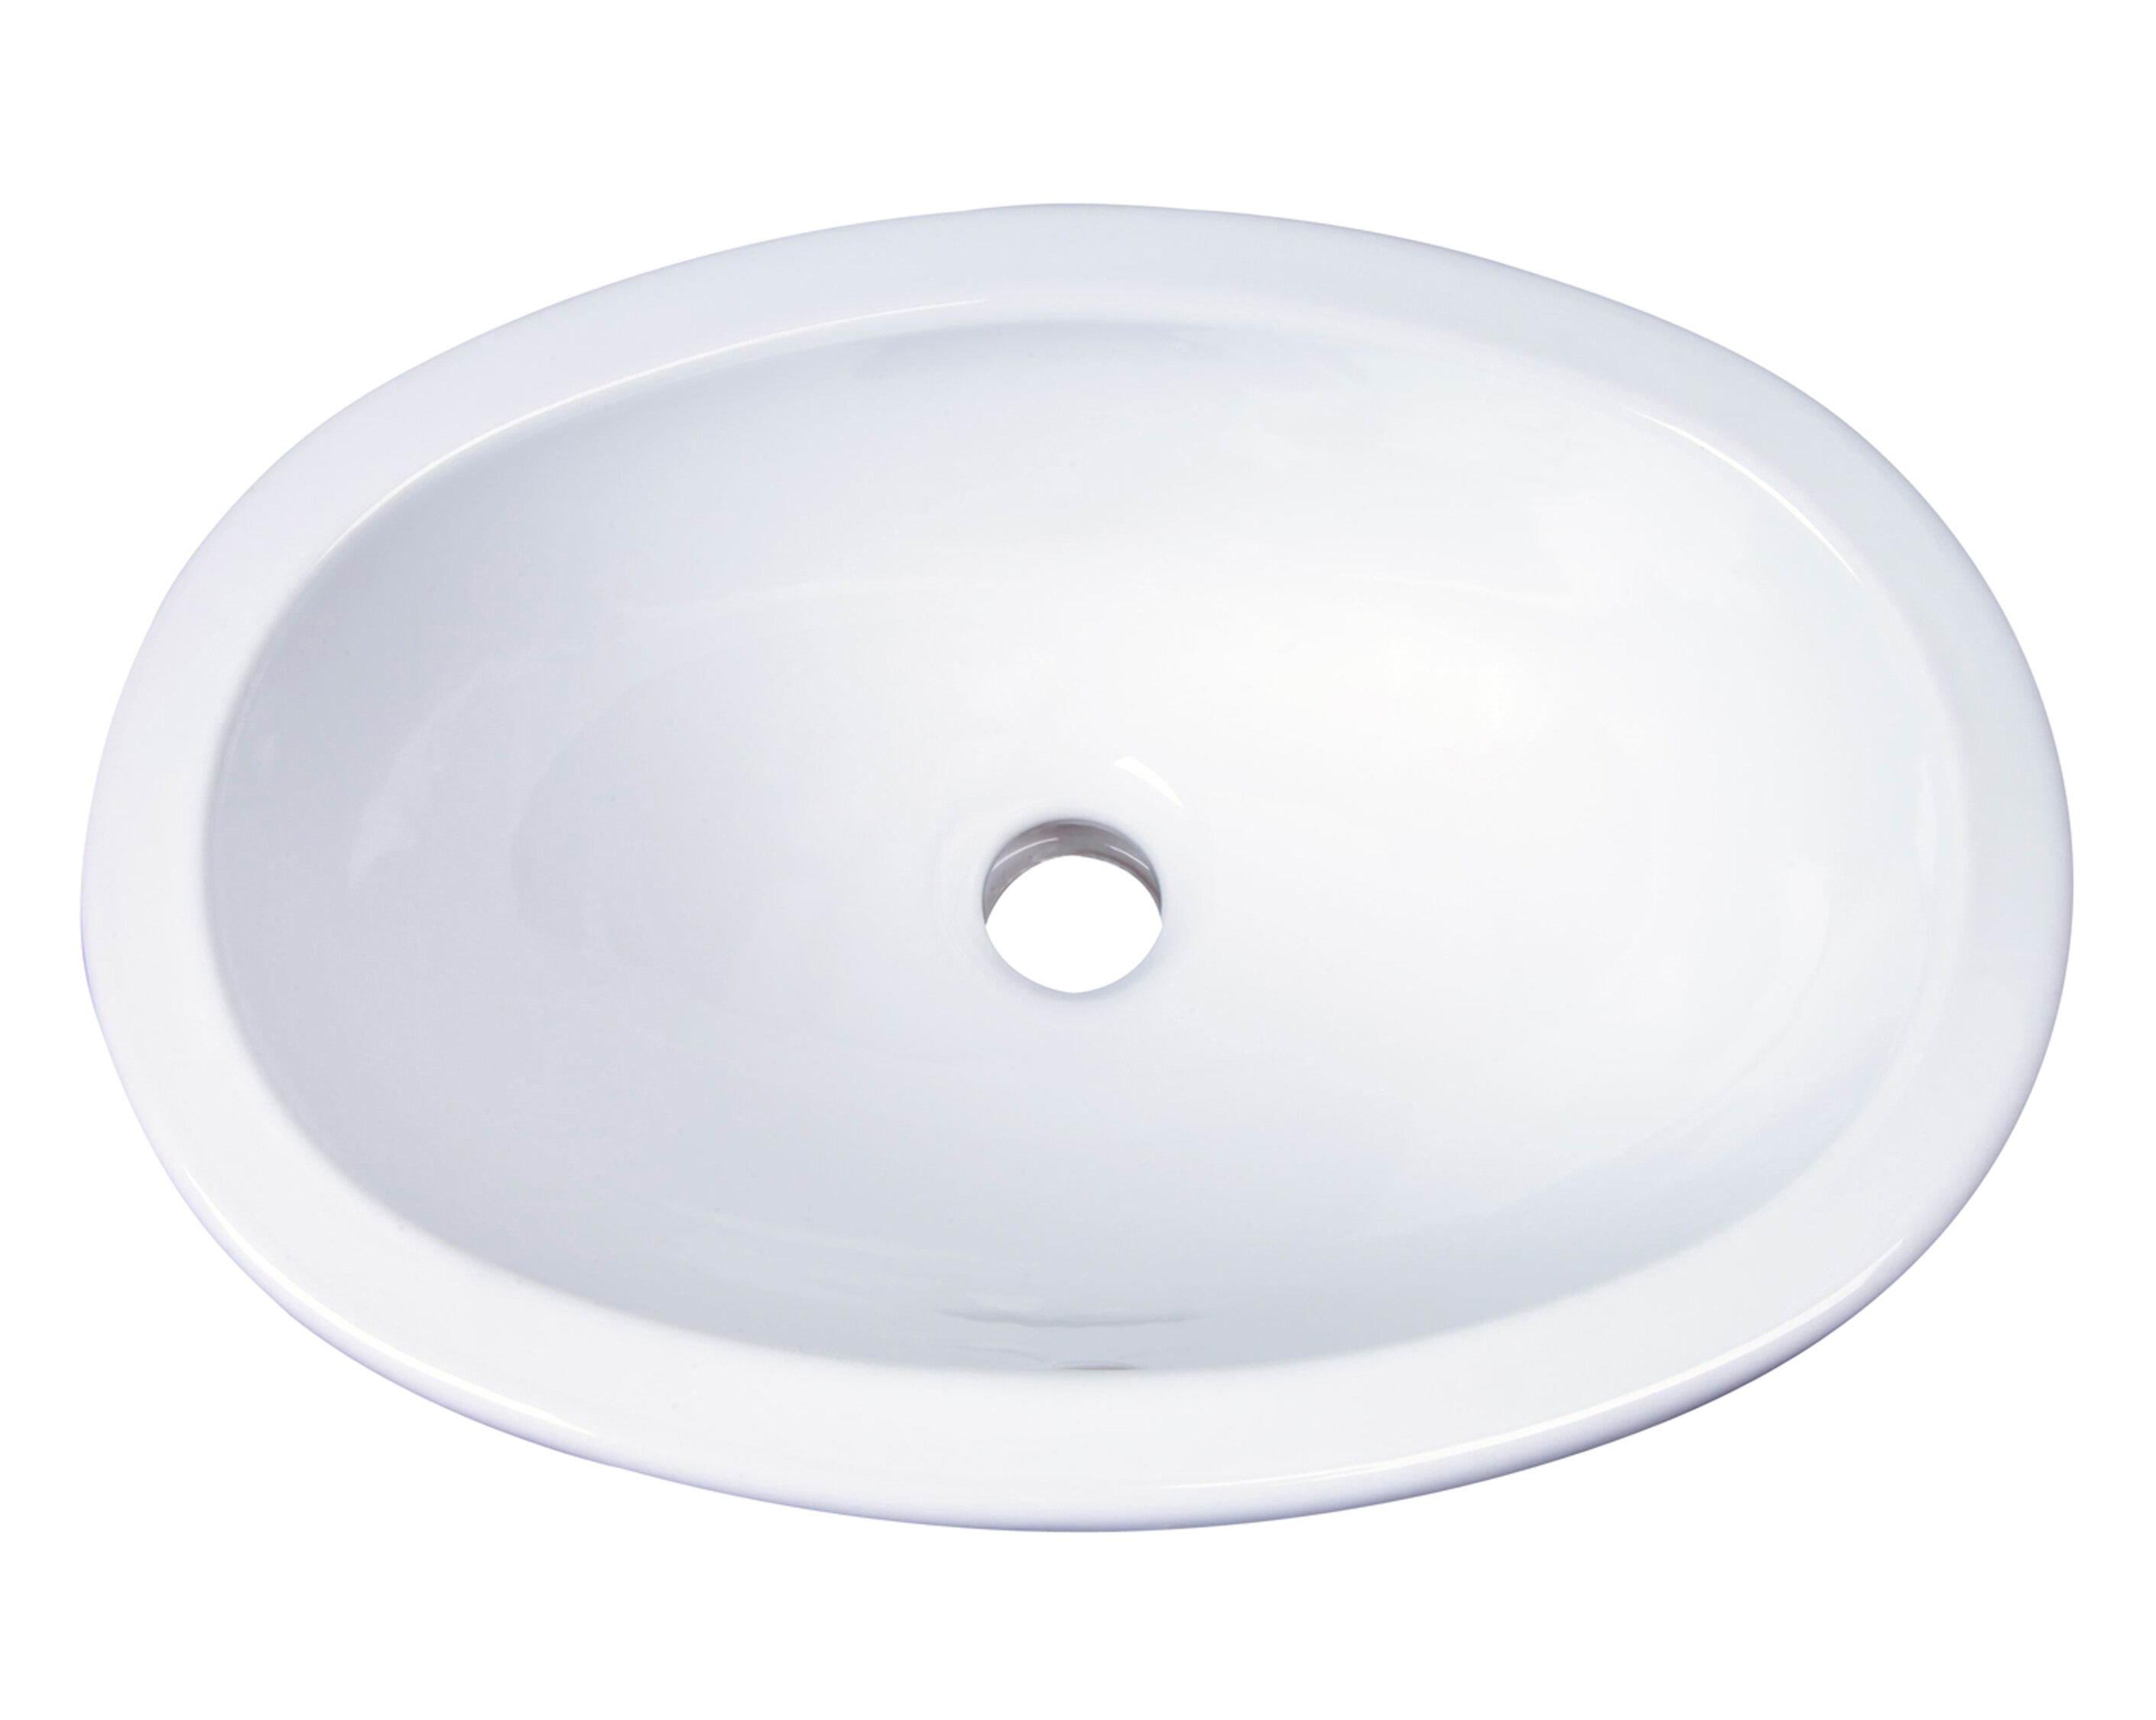 Barclay Lily Vitreous China Oval Drop In Bathroom Sink With Overflow Reviews Wayfair